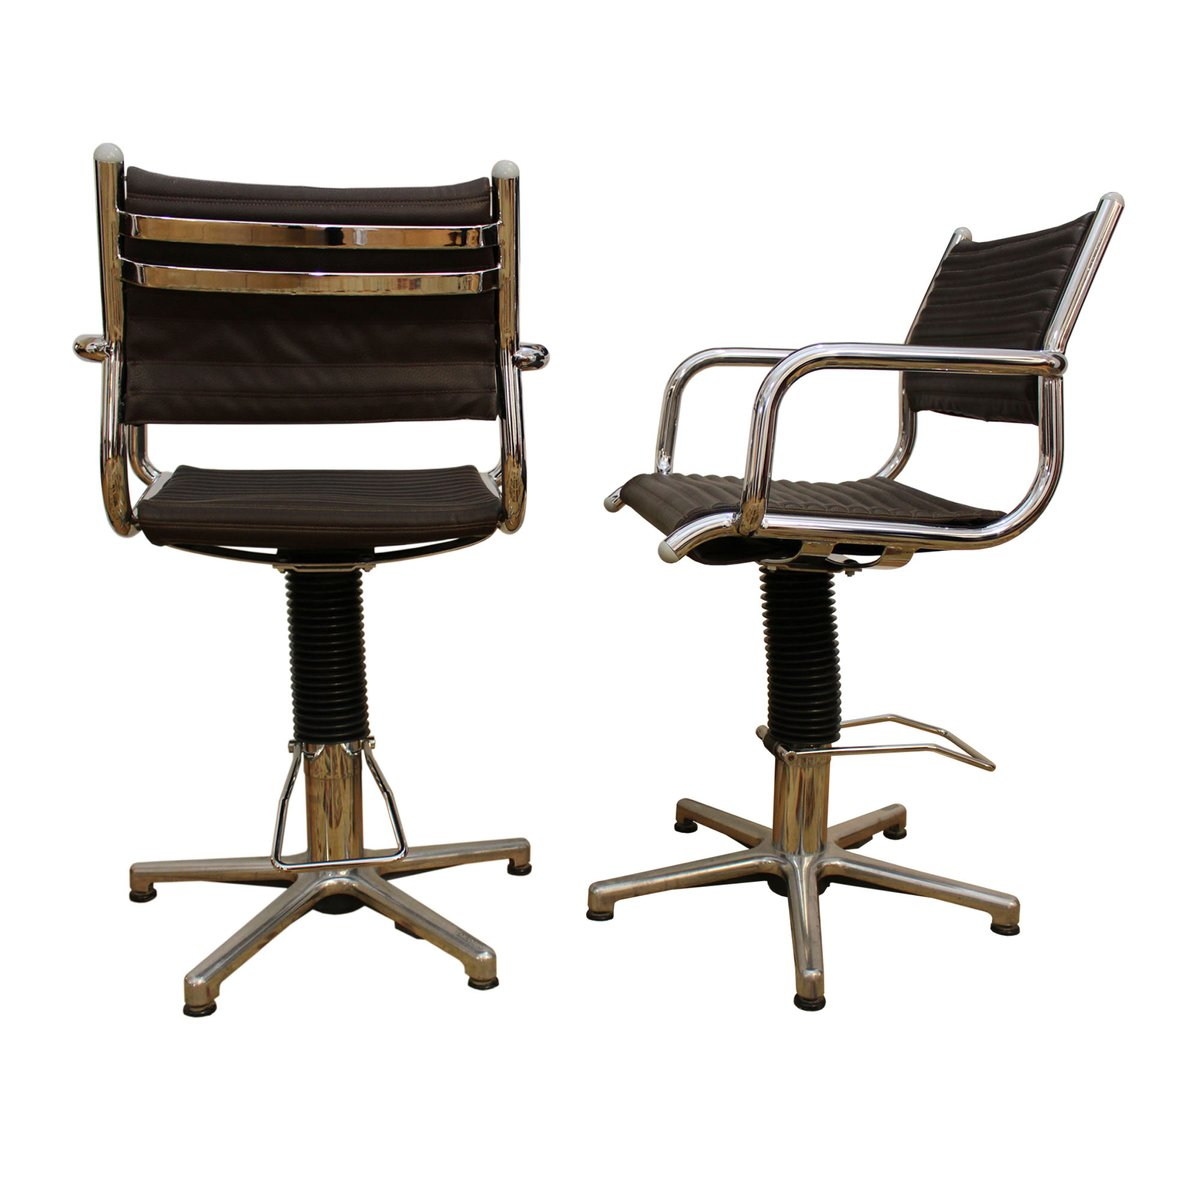 swivel chairs from olymp 1970s set of 2 for sale at pamono. Black Bedroom Furniture Sets. Home Design Ideas